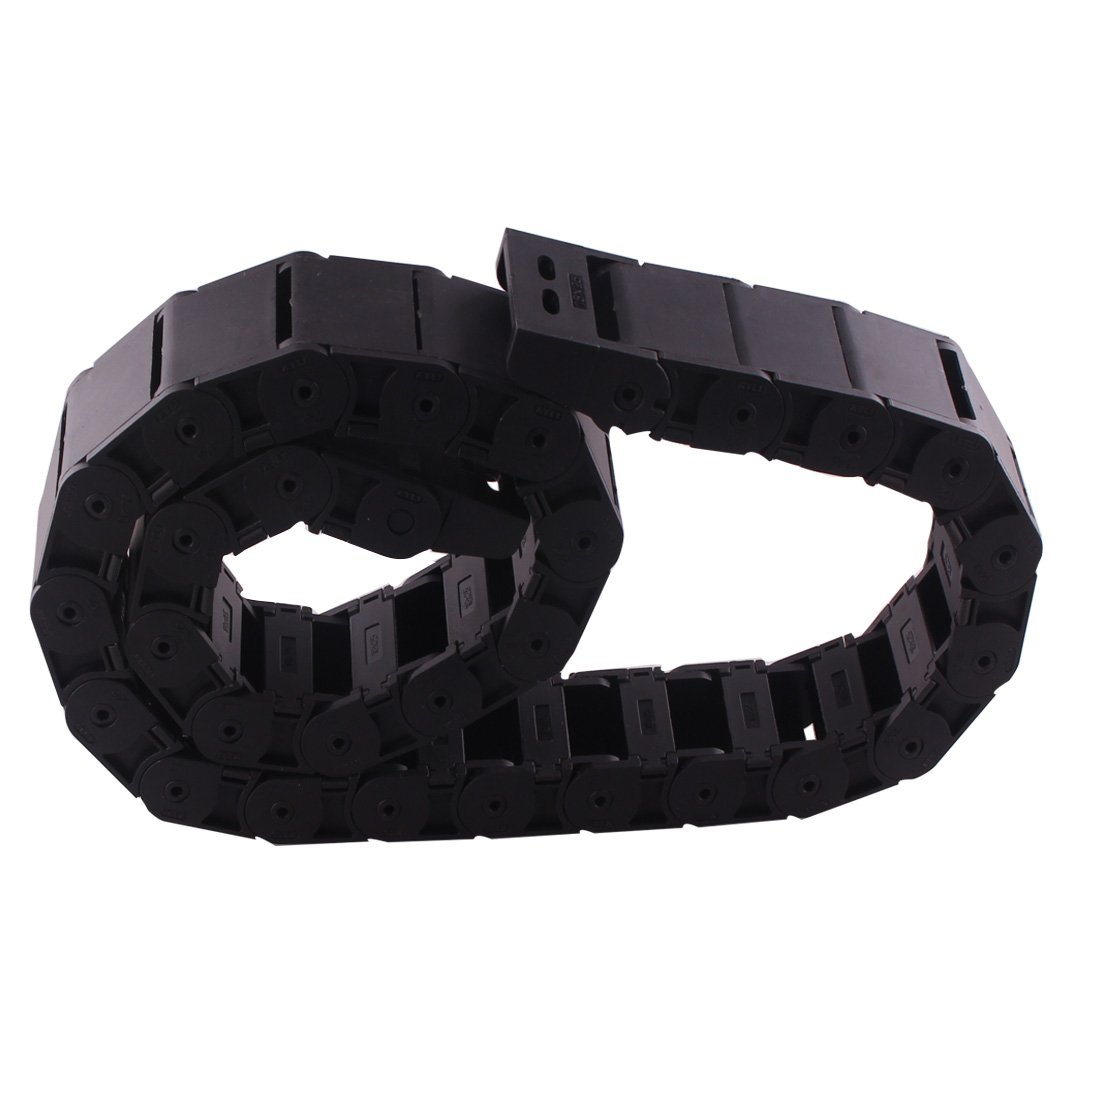 15mm x 30mm Plastic Semi Closed CNC Machine Tool Cable Wire Carrier Drag Chain 1M Black Ted Lele 15mm x 30mm